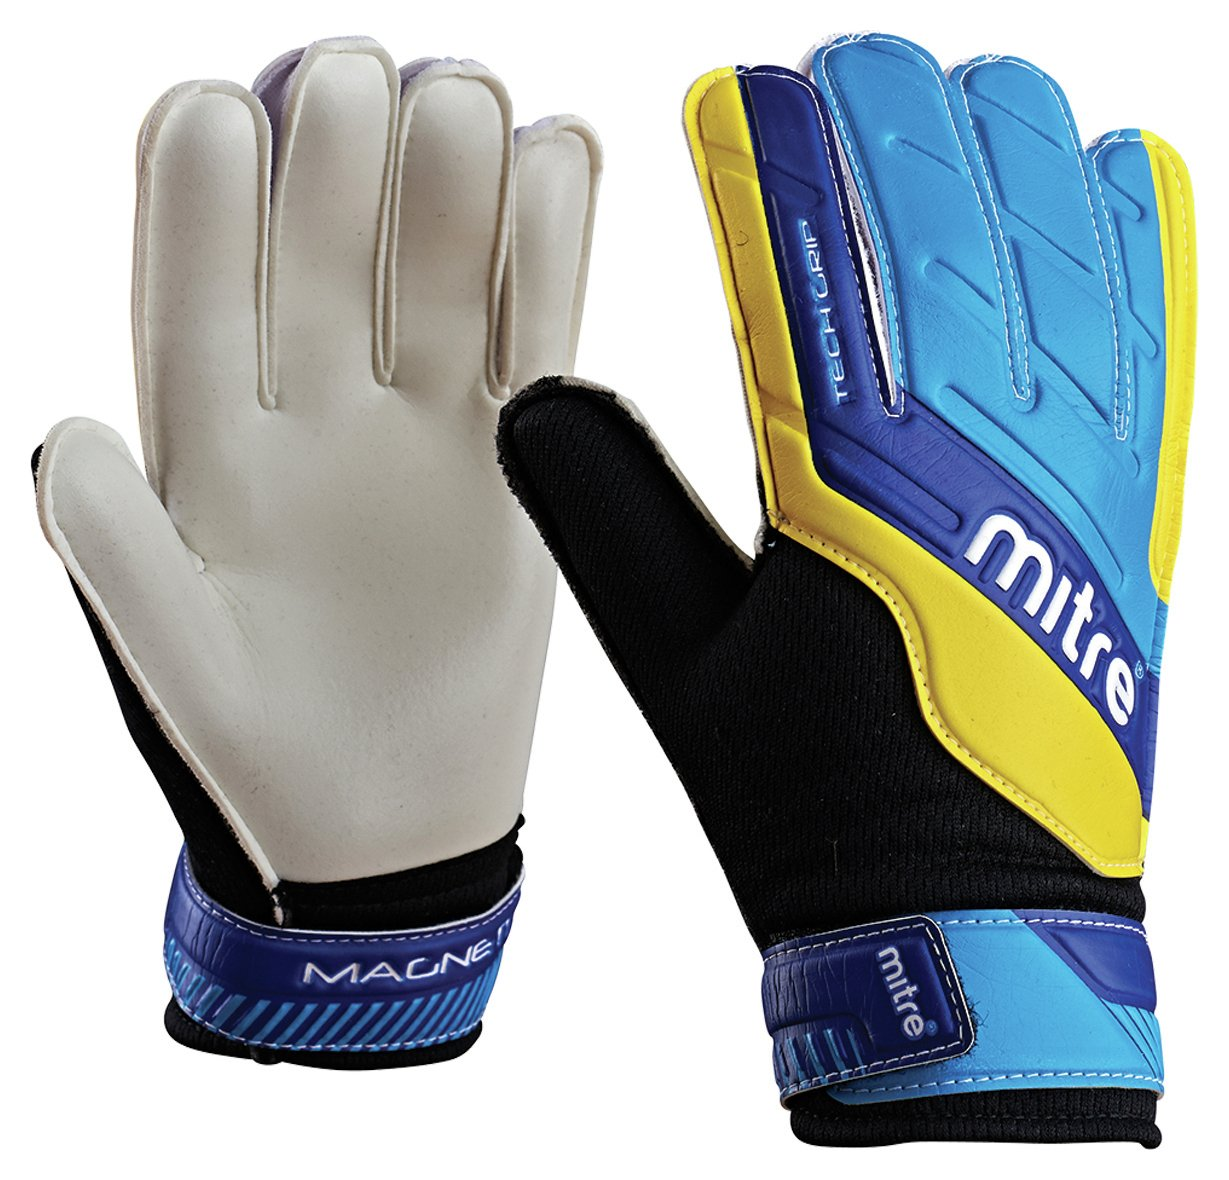 Driving gloves argos - Mitre Magnetite Goalkeeper Gloves Junior